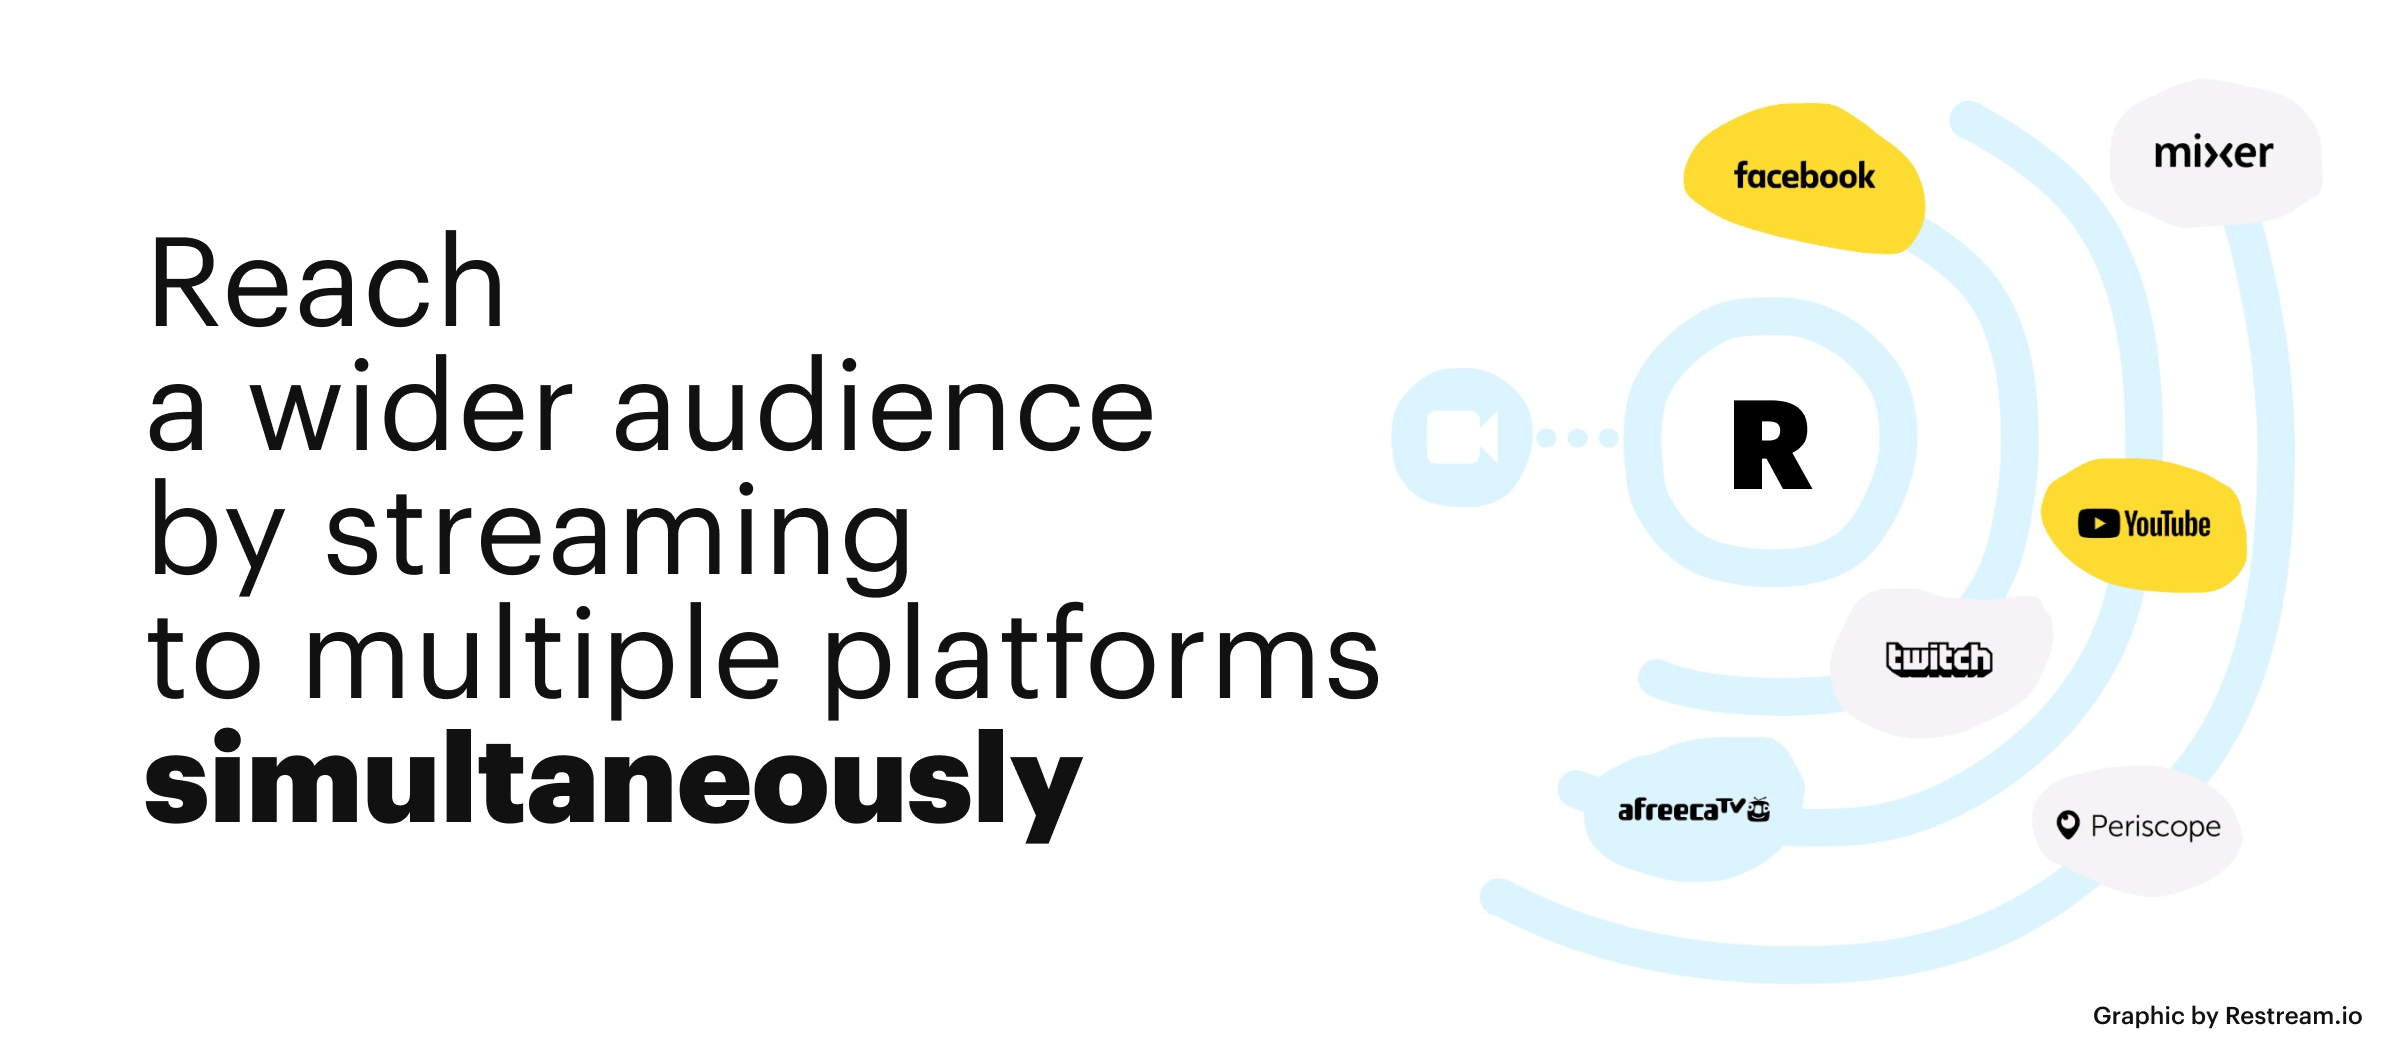 Reach a wider audience by streaming to multiple platforms simultaneously